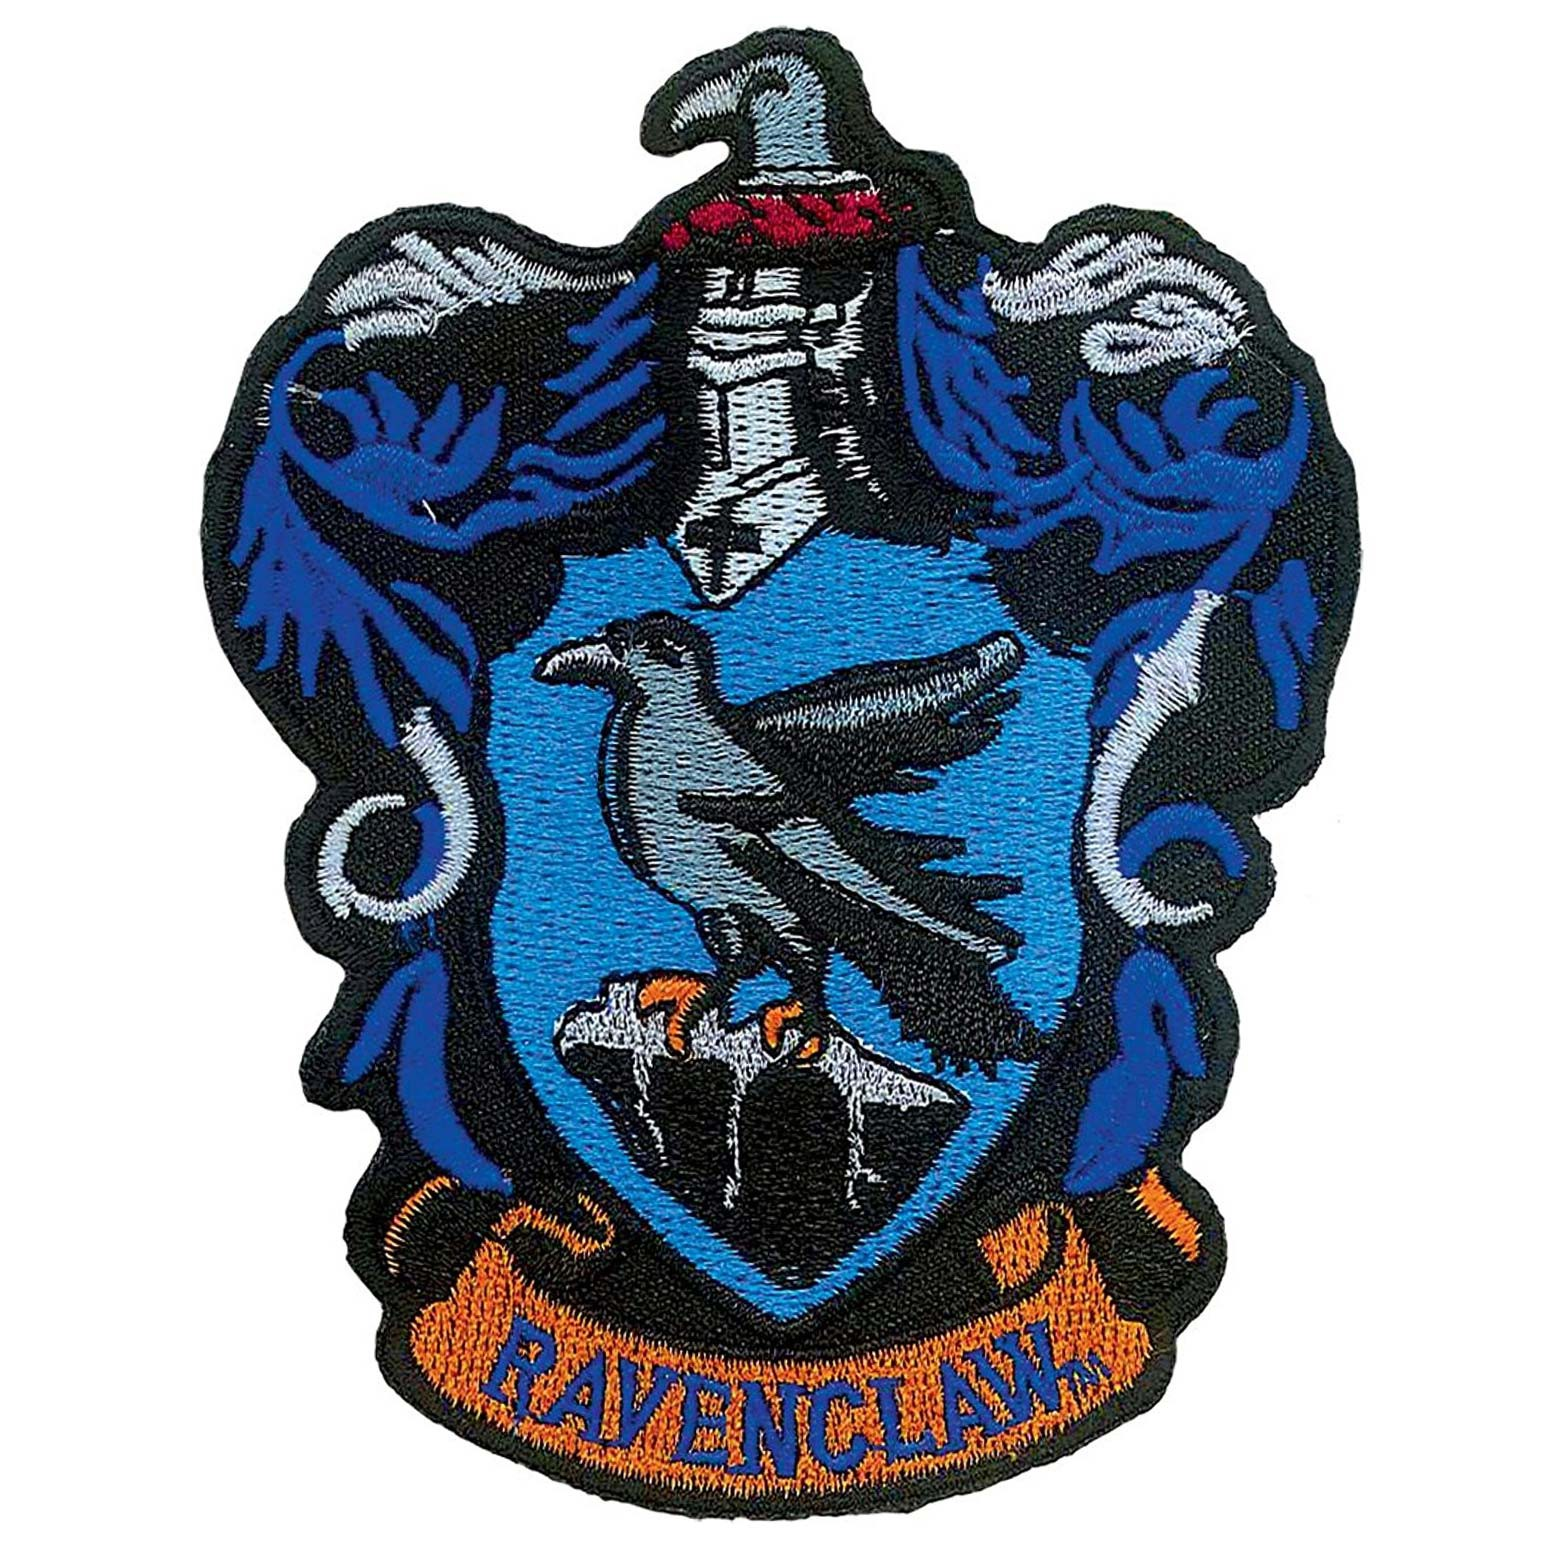 Harry Potter Ravenclaw IRON-ONS FABRIC APPLIQUES IRON-ON New